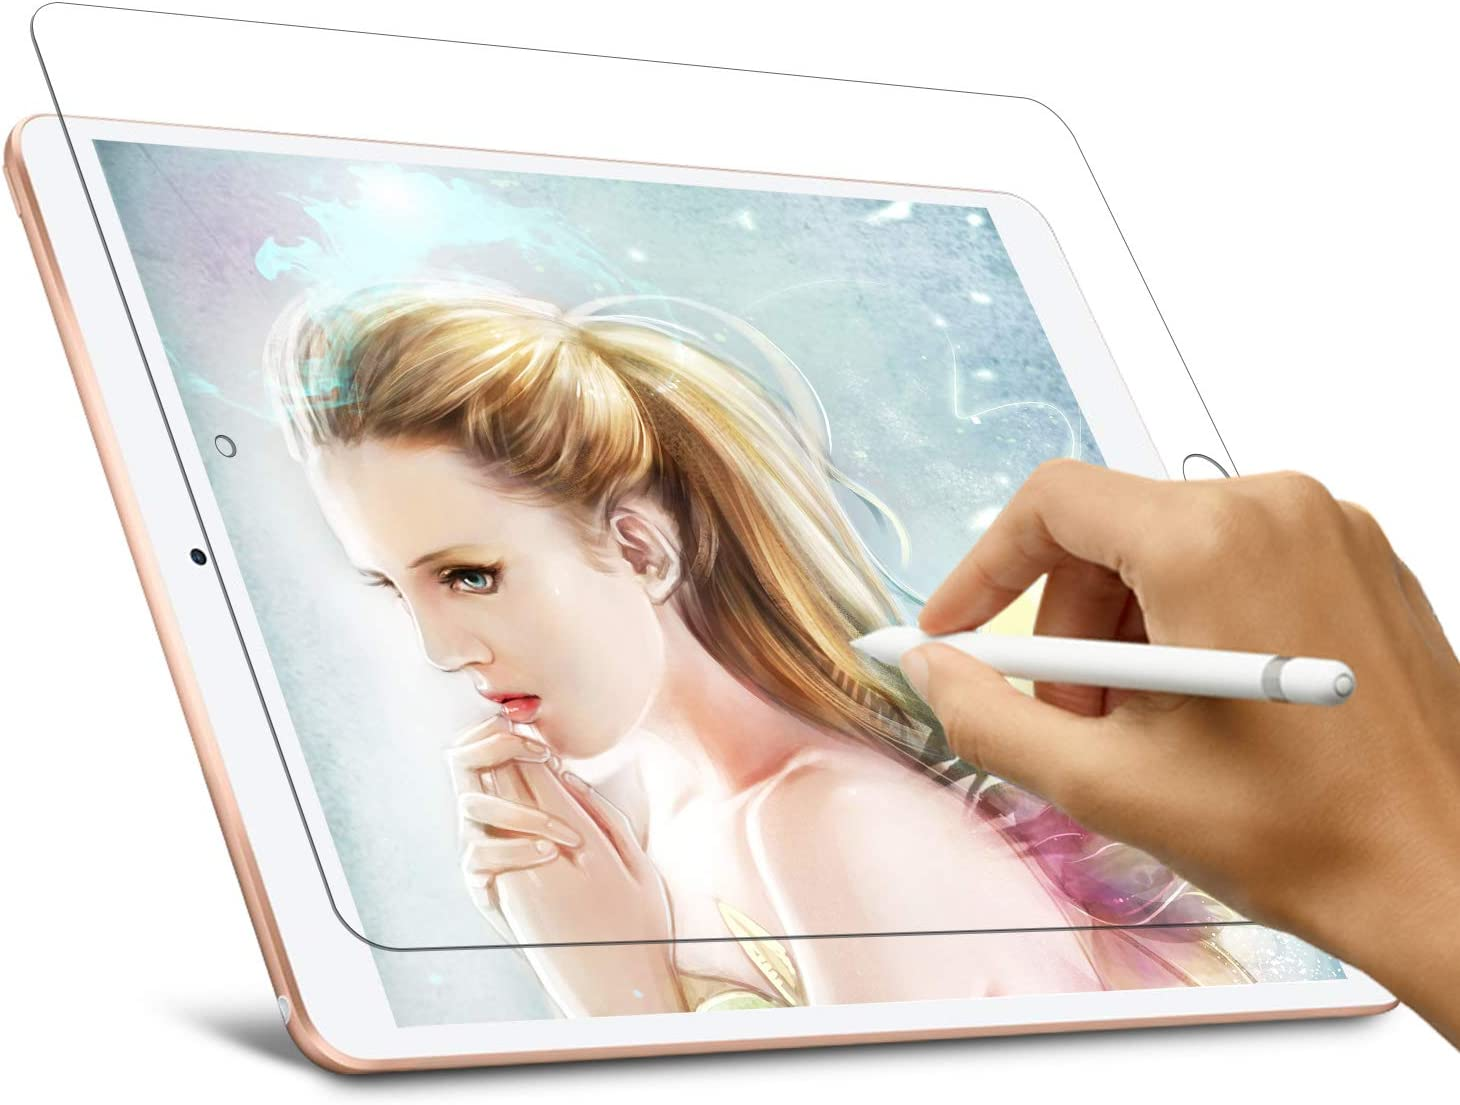 Paperfeel Screen Protector for iPad Air 3 (2019) 10.5inch / iPad Pro 10.5 (2017), Homagical iPad Air 3 Screen Protector, Paper Texture Film Anti Glare Scratch Resistant, Compatible with Apple Pencil